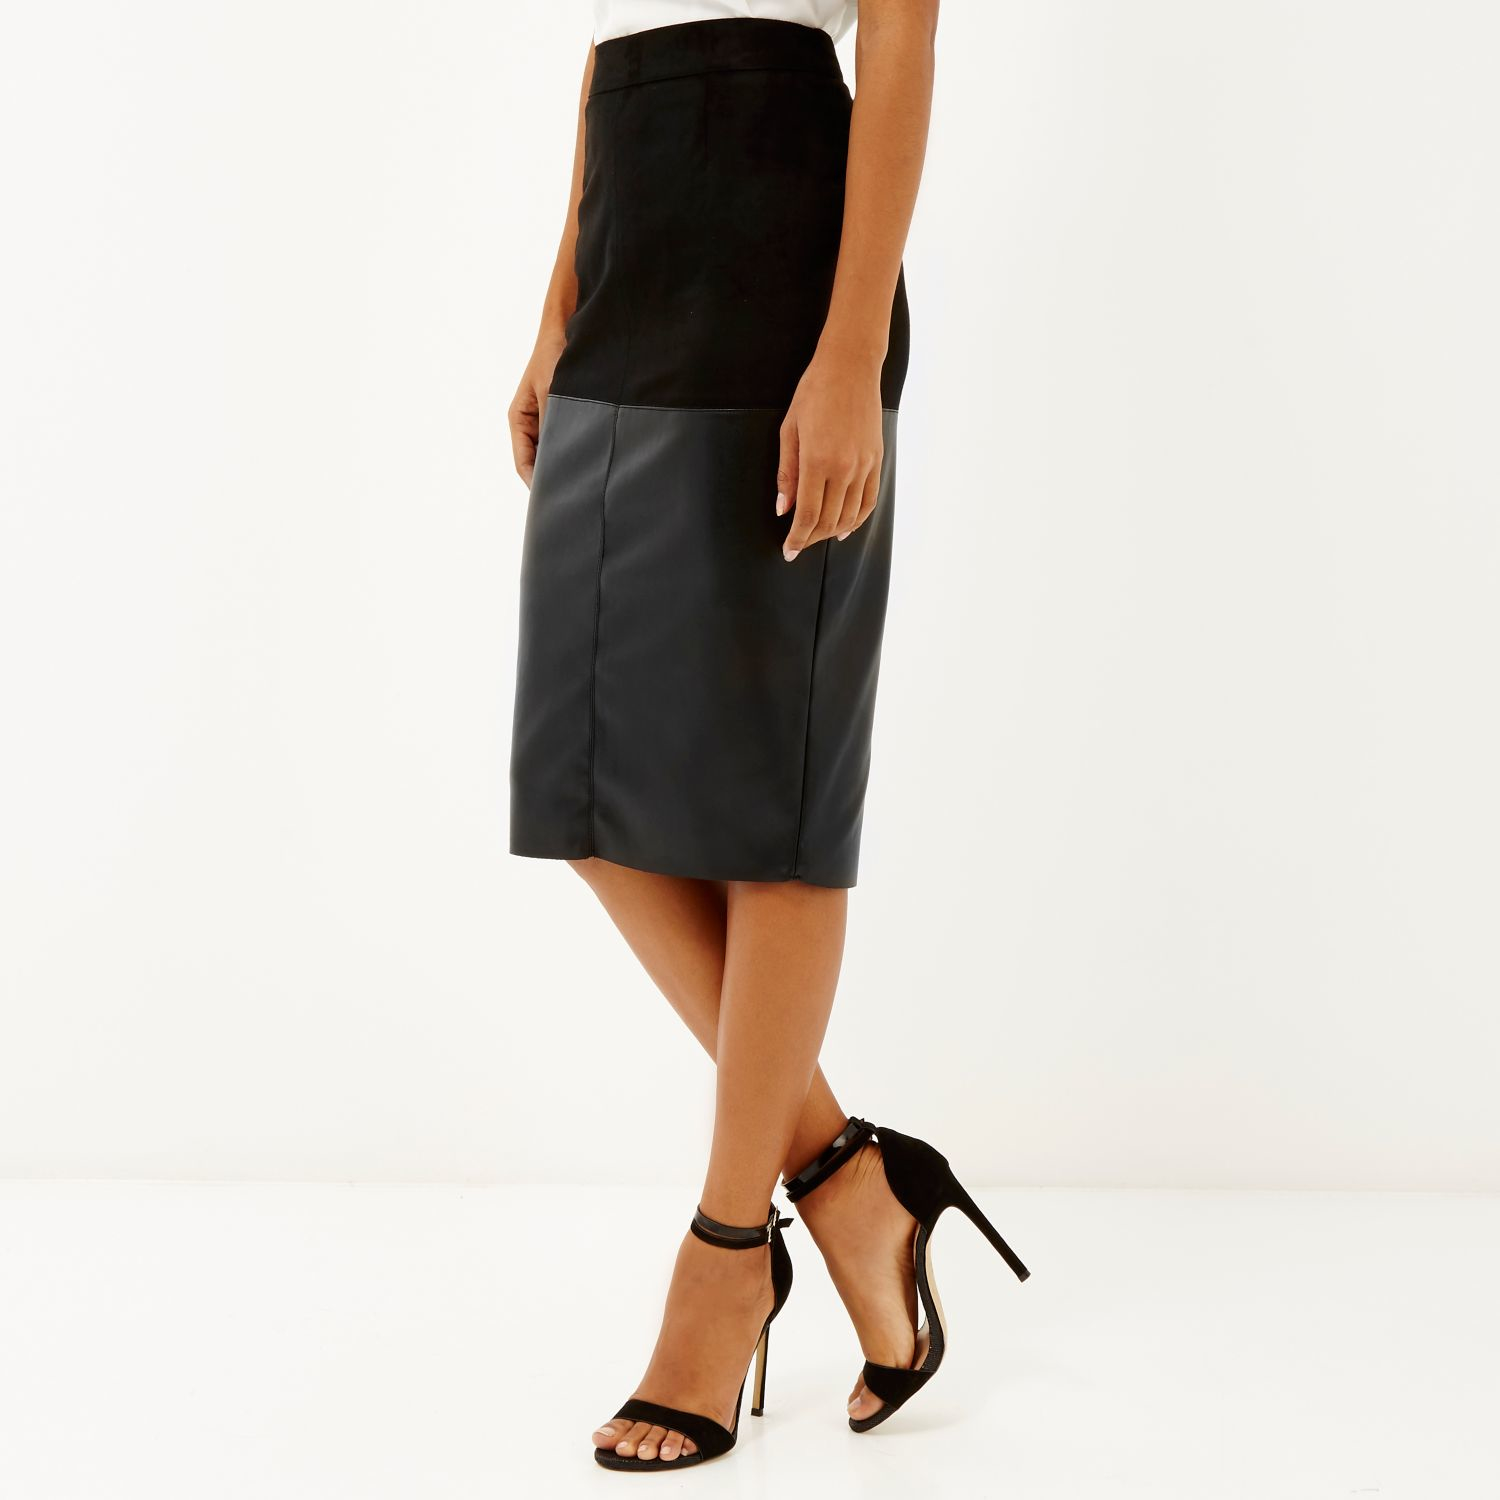 River island Black Faux-suede Pencil Skirt in Black | Lyst